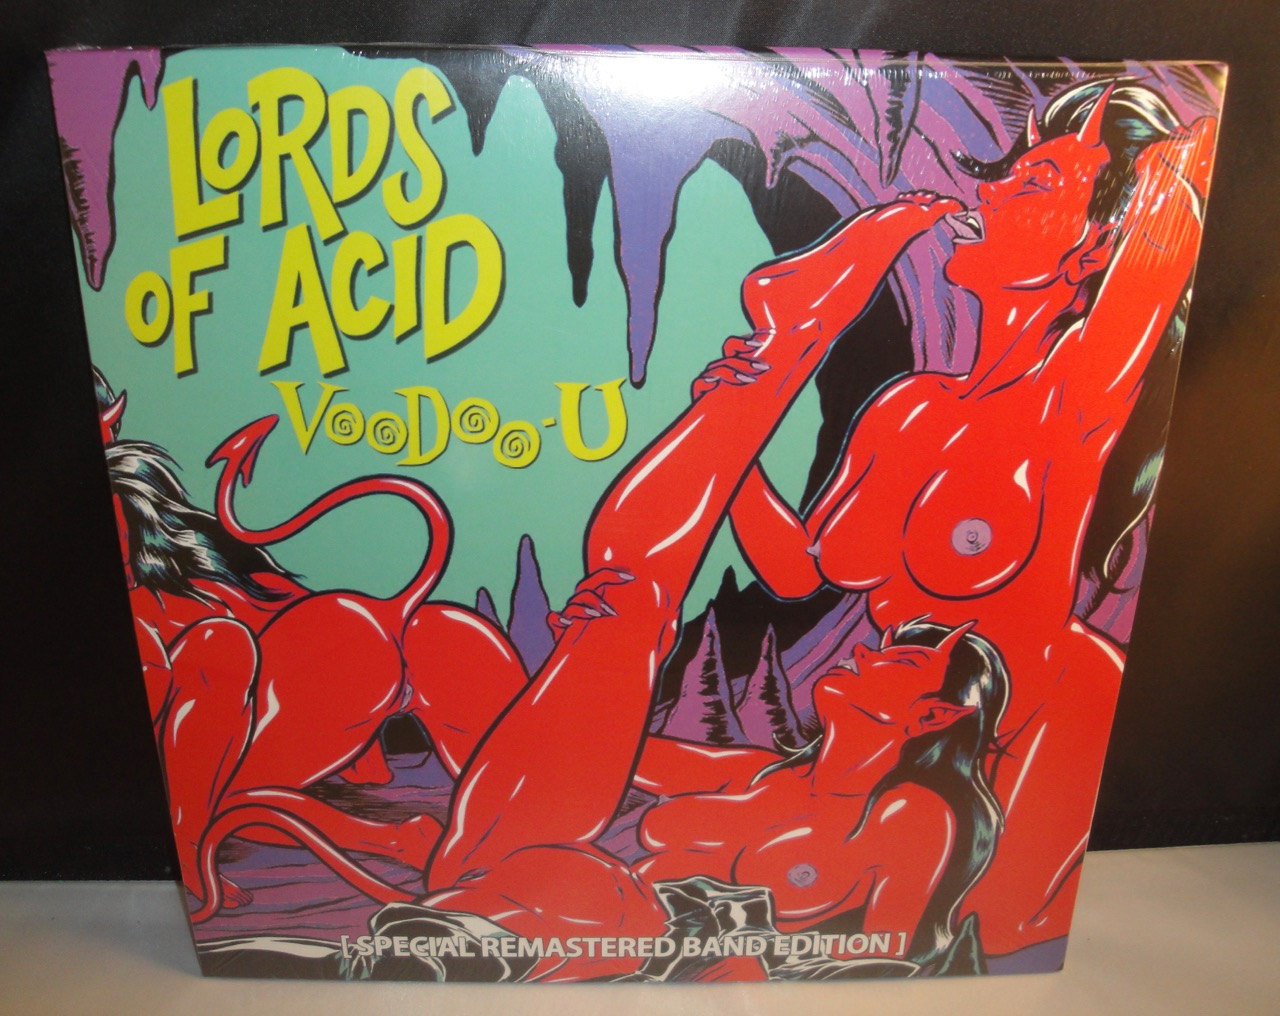 Lords Of Acid - Voodoo-u (special Remastered Band Edition) - Limited Edition, 2XLP Vinyl, 2017